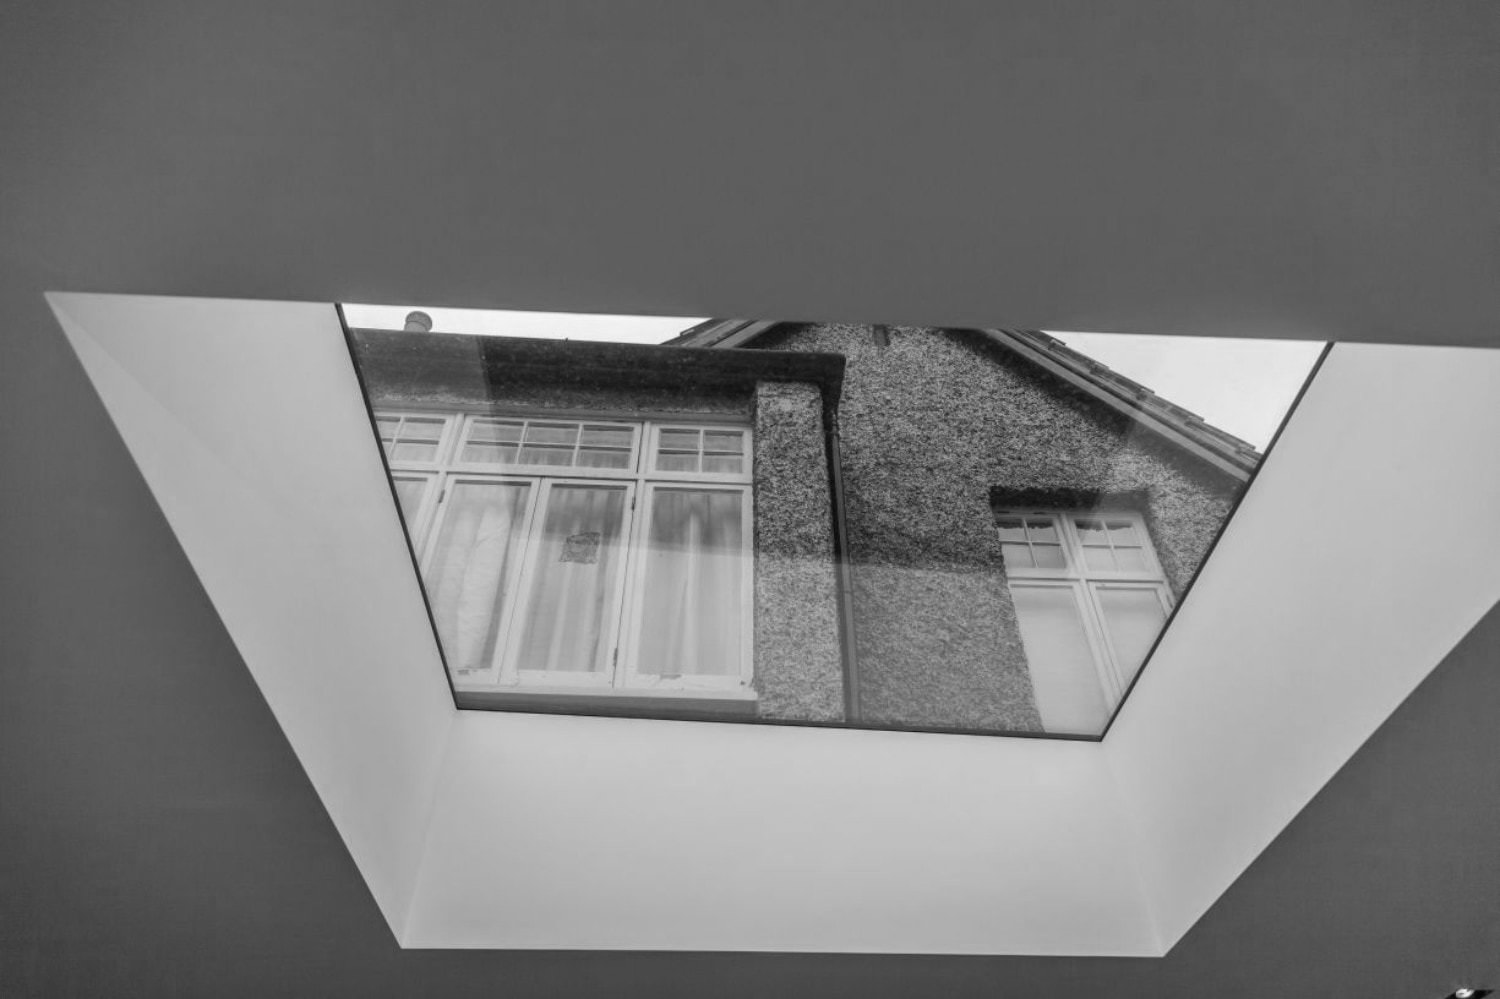 glass rooflights project Richmond london